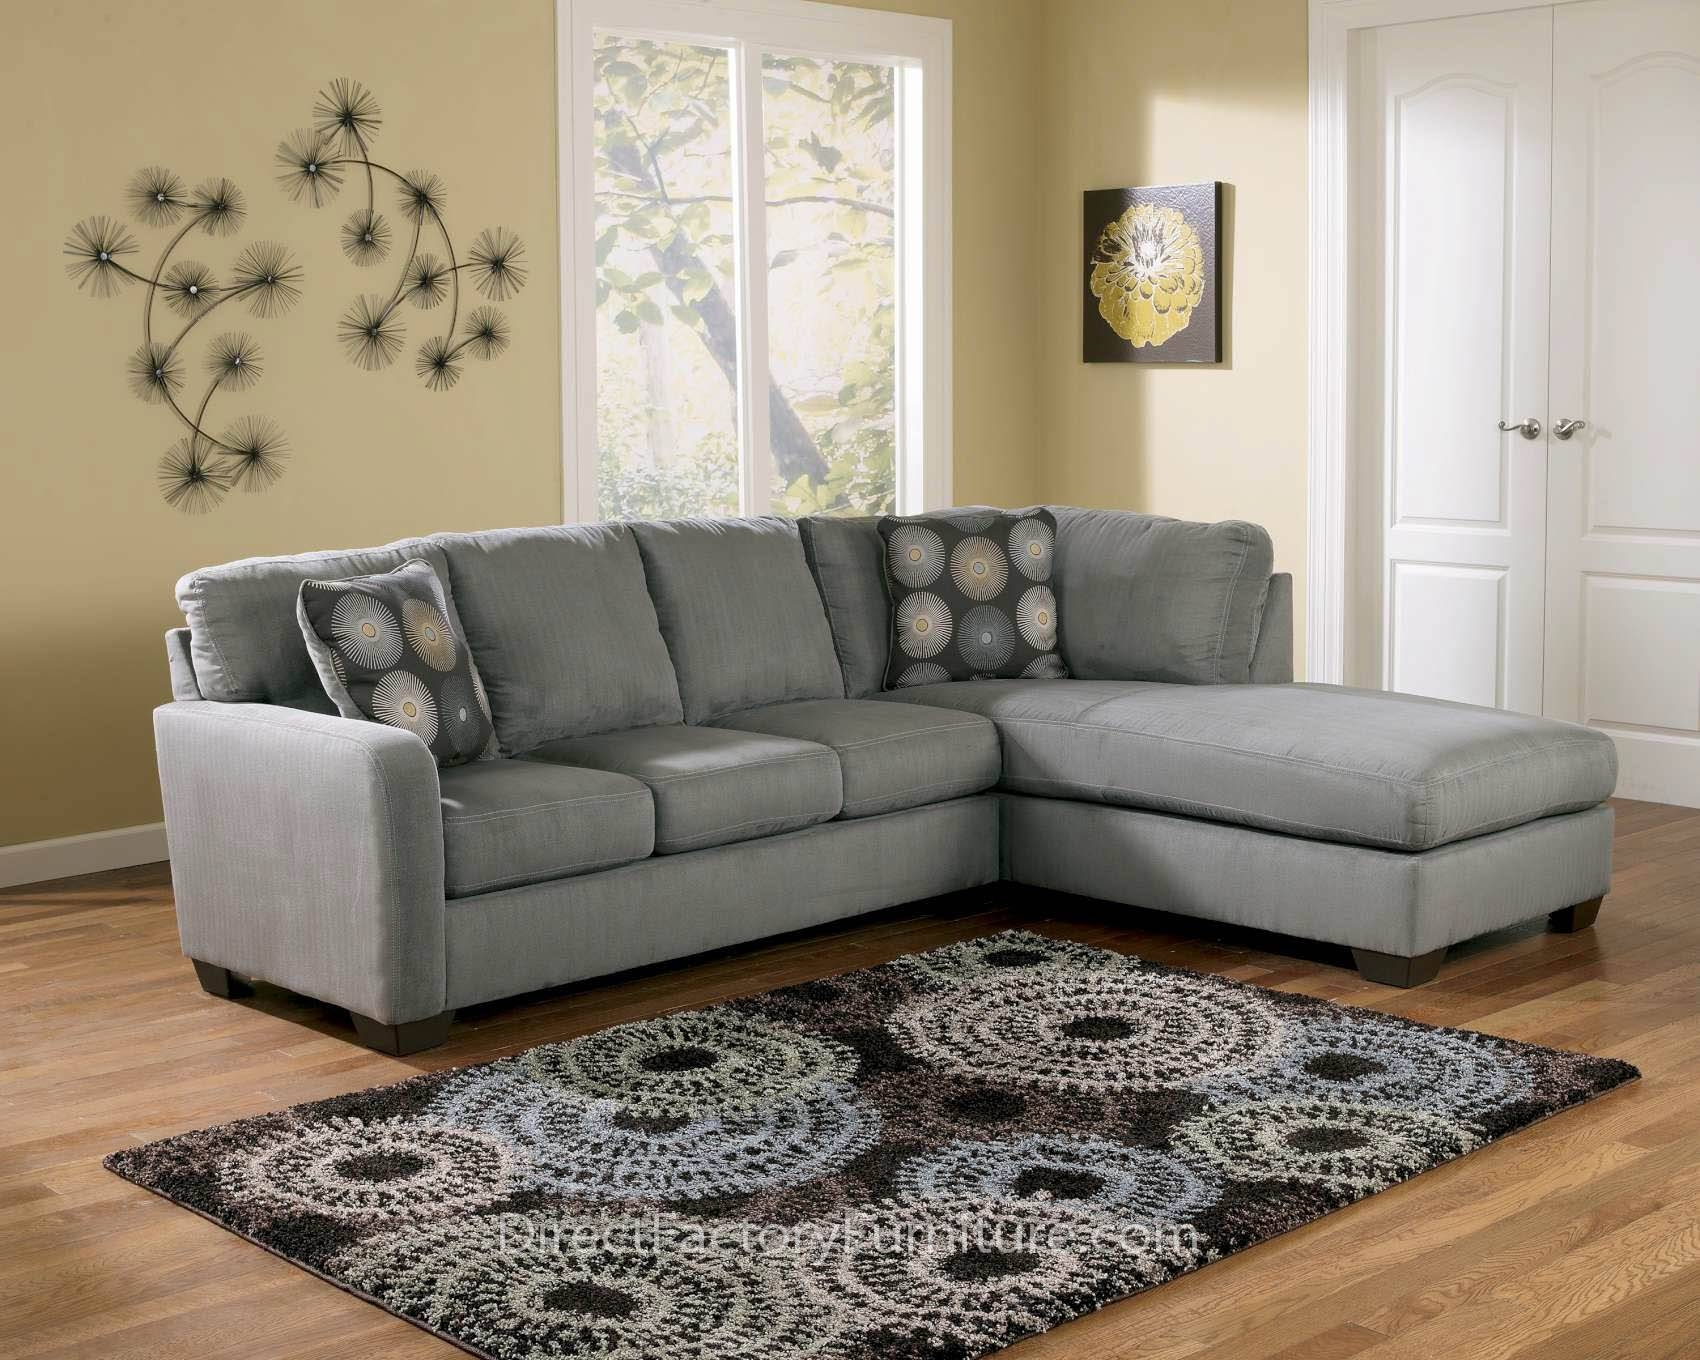 Decorating: Elite Small L Shaped Couch As Sectional Sofa Ash Grey regarding Small L-Shaped Sectional Sofas (Image 6 of 15)